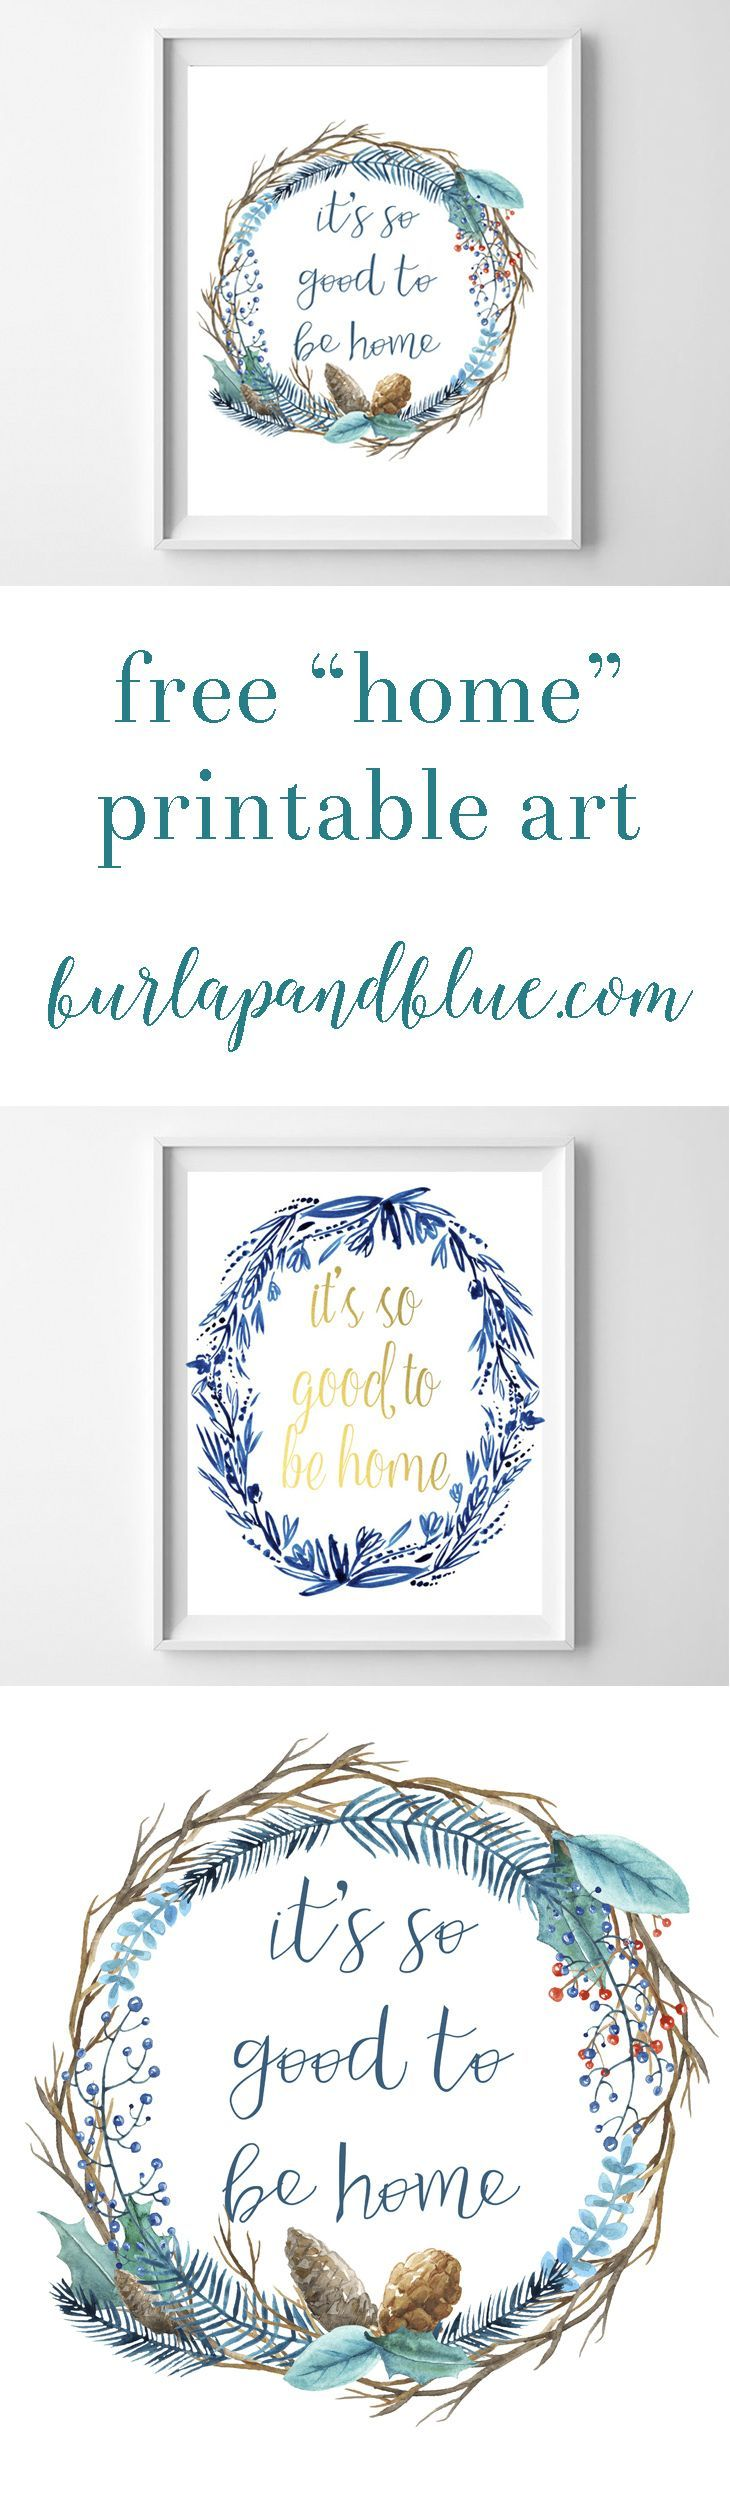 "free ""home"" printables with Capital One Free printable"